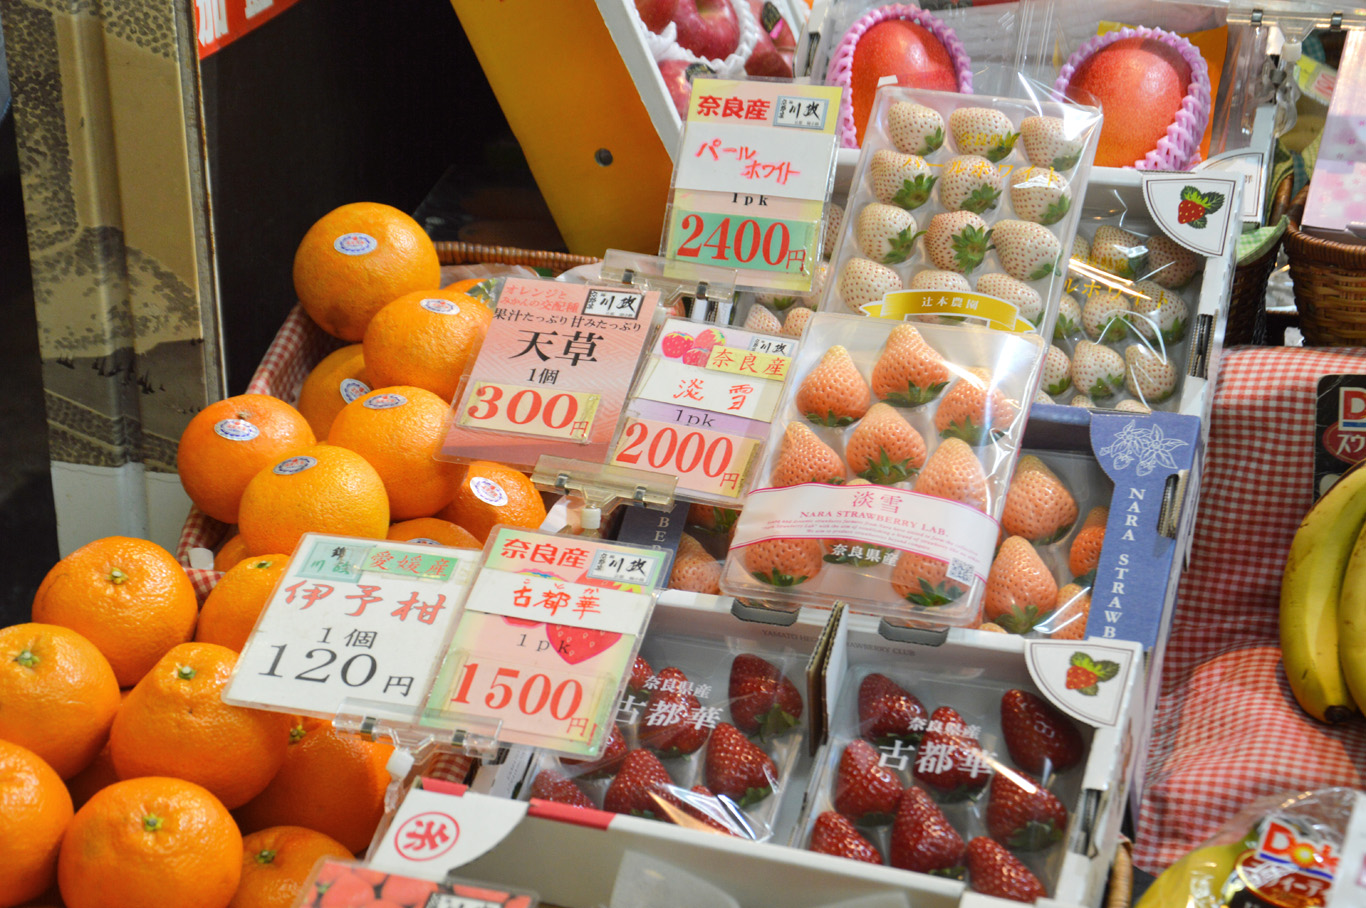 Fruit market in Japan - 8 red strawberries for 14 USD and 12 white strawberries for 22 USD